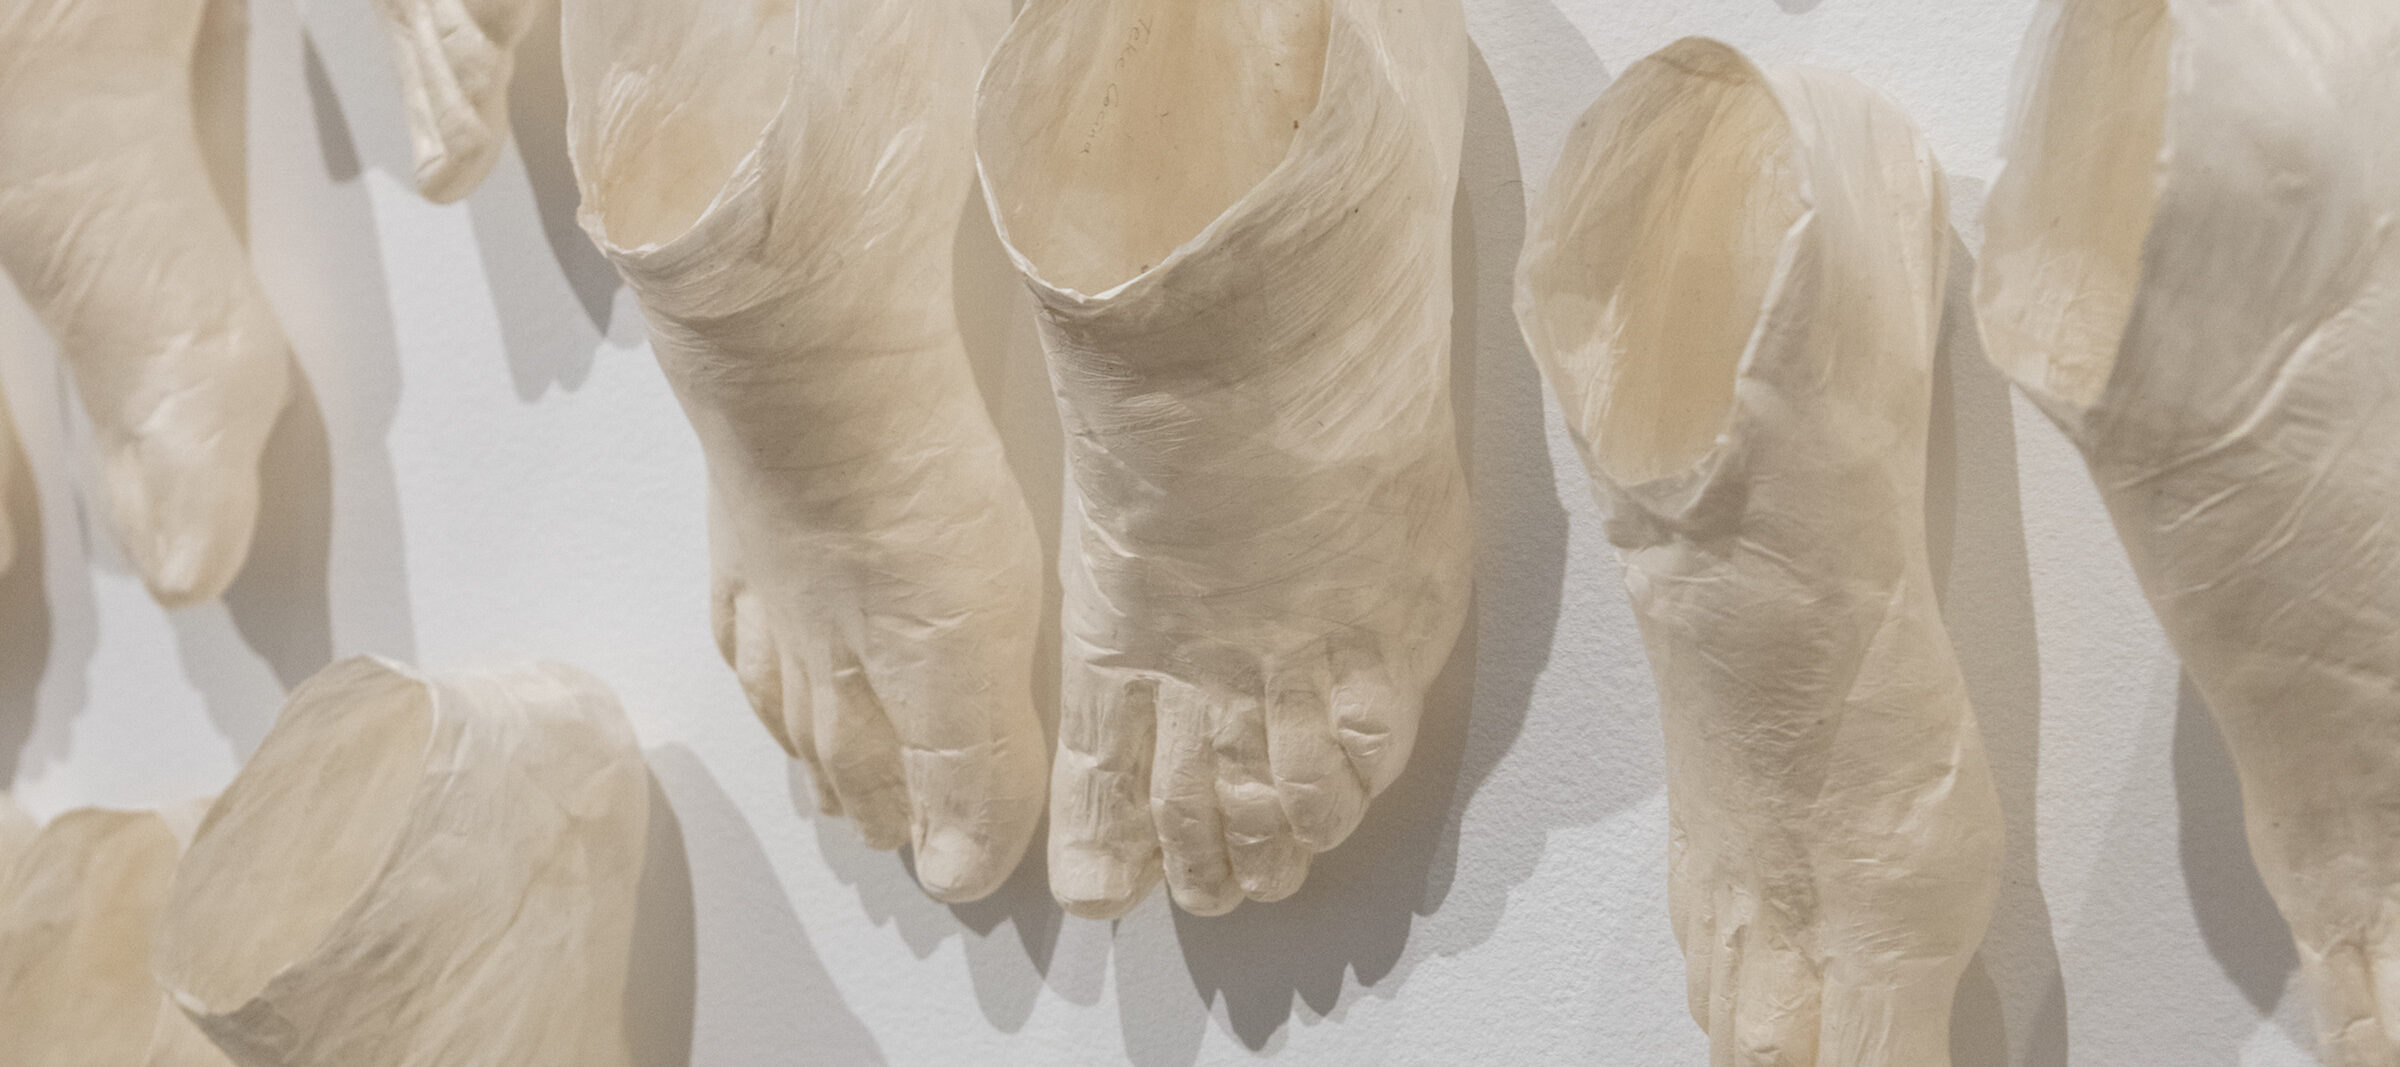 Detail view of a contemporary art installation made up of countless beige foot sculptures that extend from the walls onto the dark floor. The feet are in pairs in varied sizes and staggered as if moving. Marks on the sculptures indicate the folds of human skin and bone.